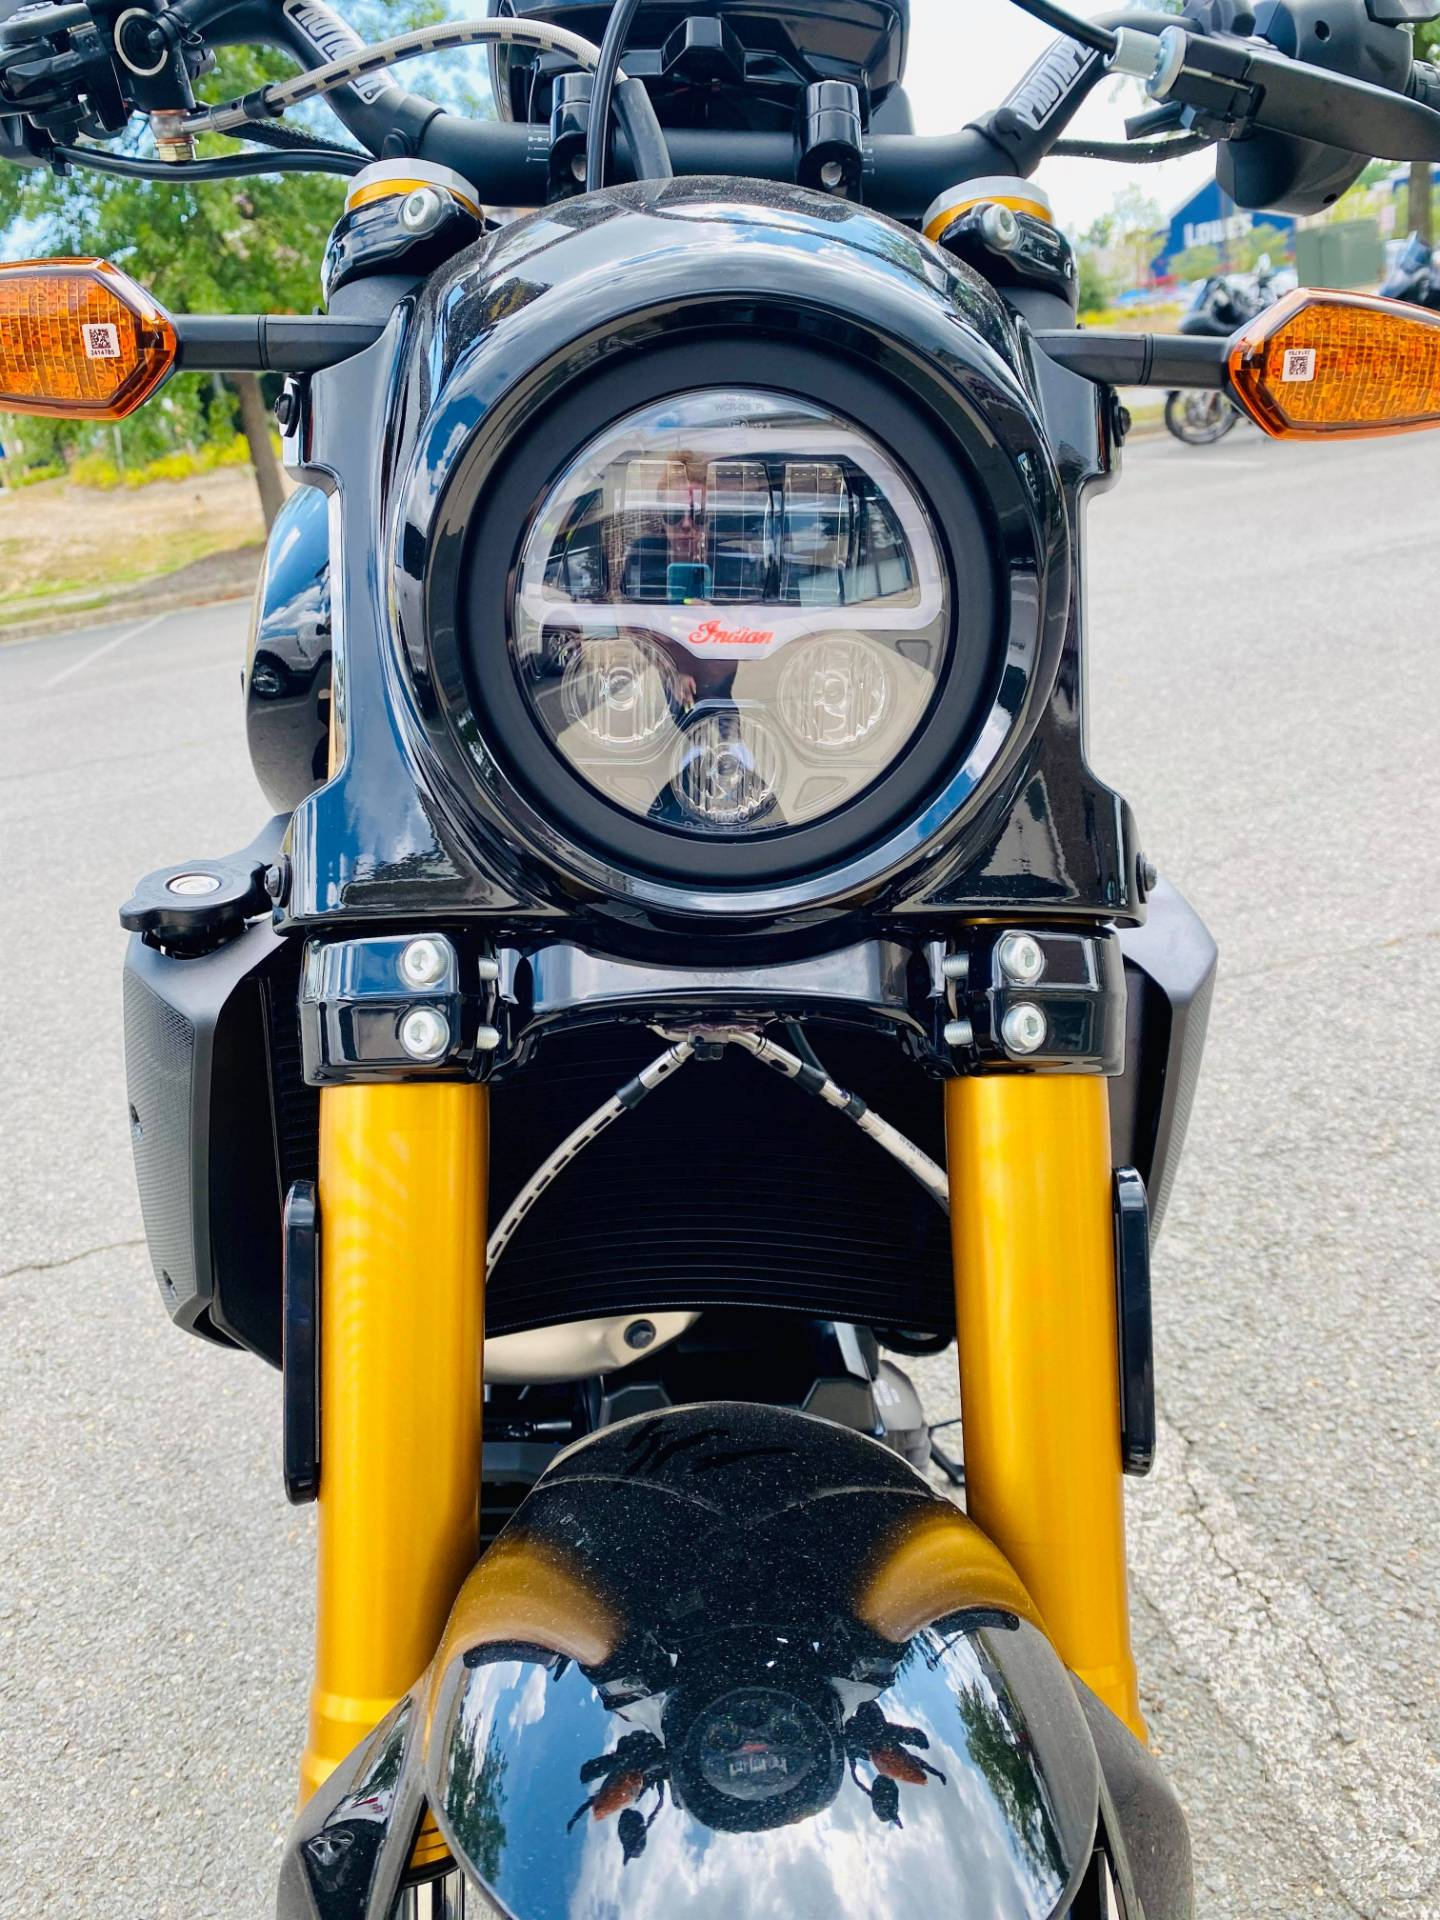 2019 Indian FTR™ 1200 S in Fredericksburg, Virginia - Photo 10